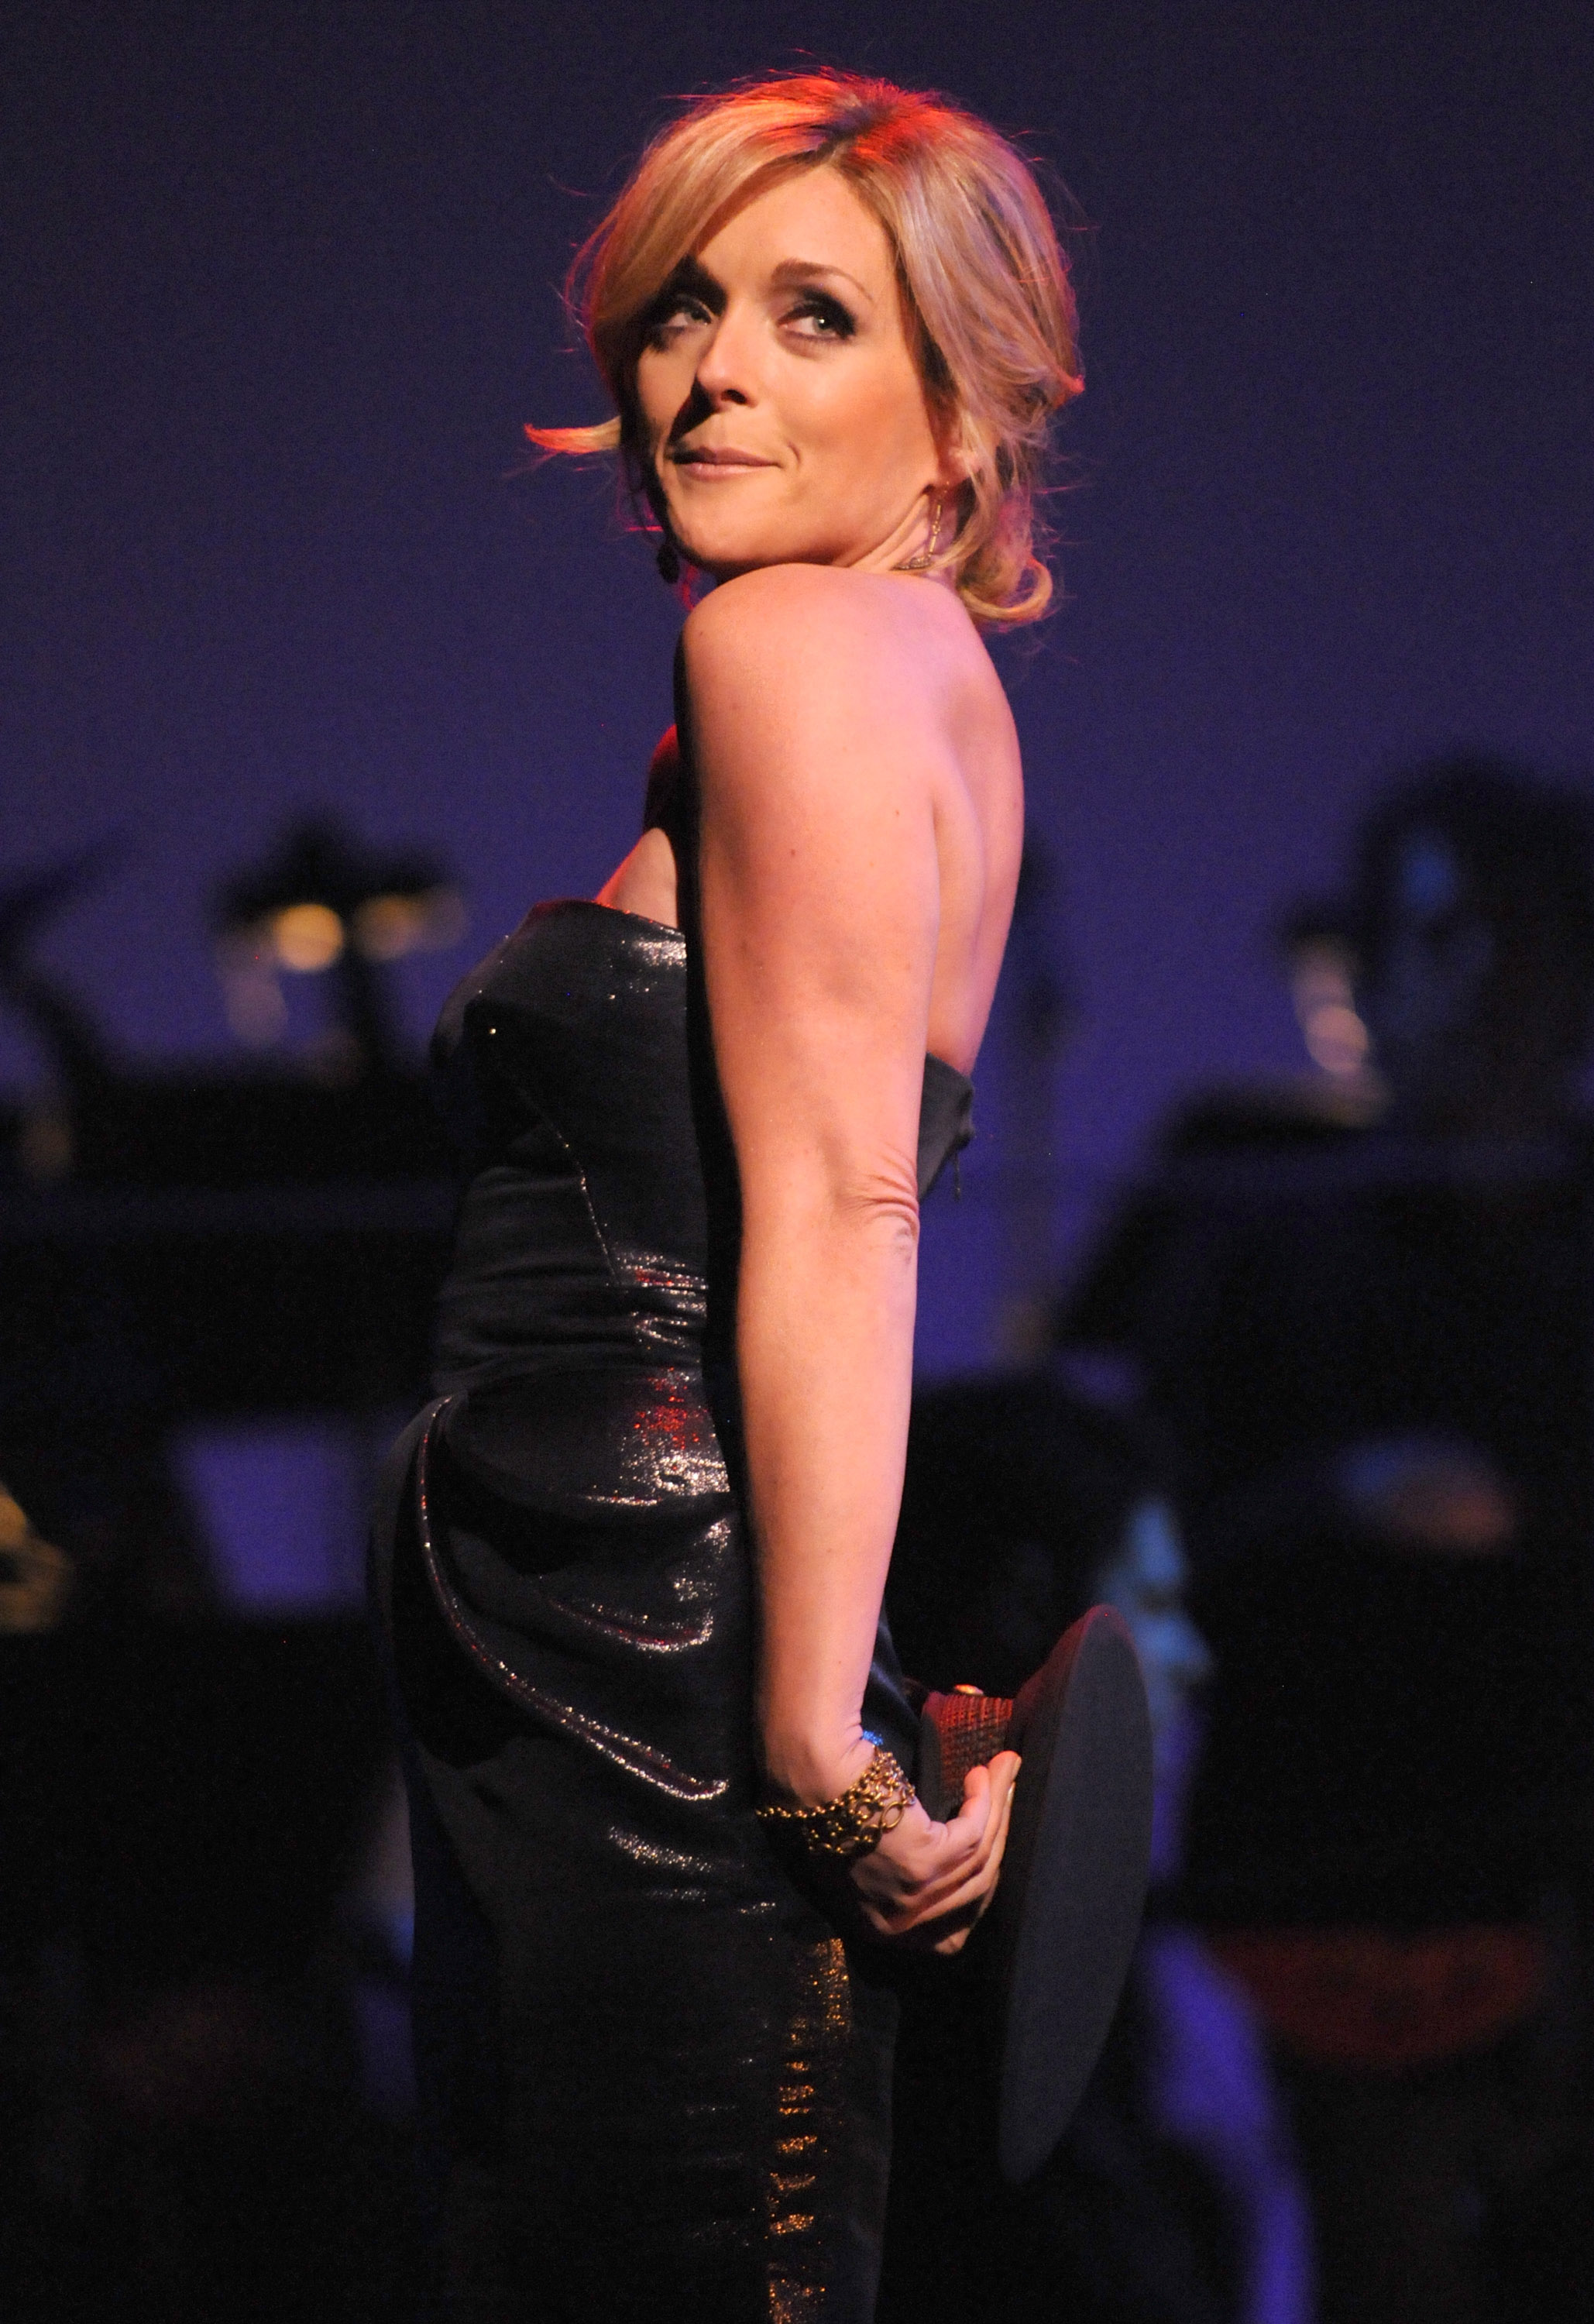 28934_Celebutopia-Jane_Krakowski_performs_during_Goodbye_Yellow_Brick_Road_Elton_John_and_friends_Raise_Funds_and_Awareness-02_122_958lo.jpg